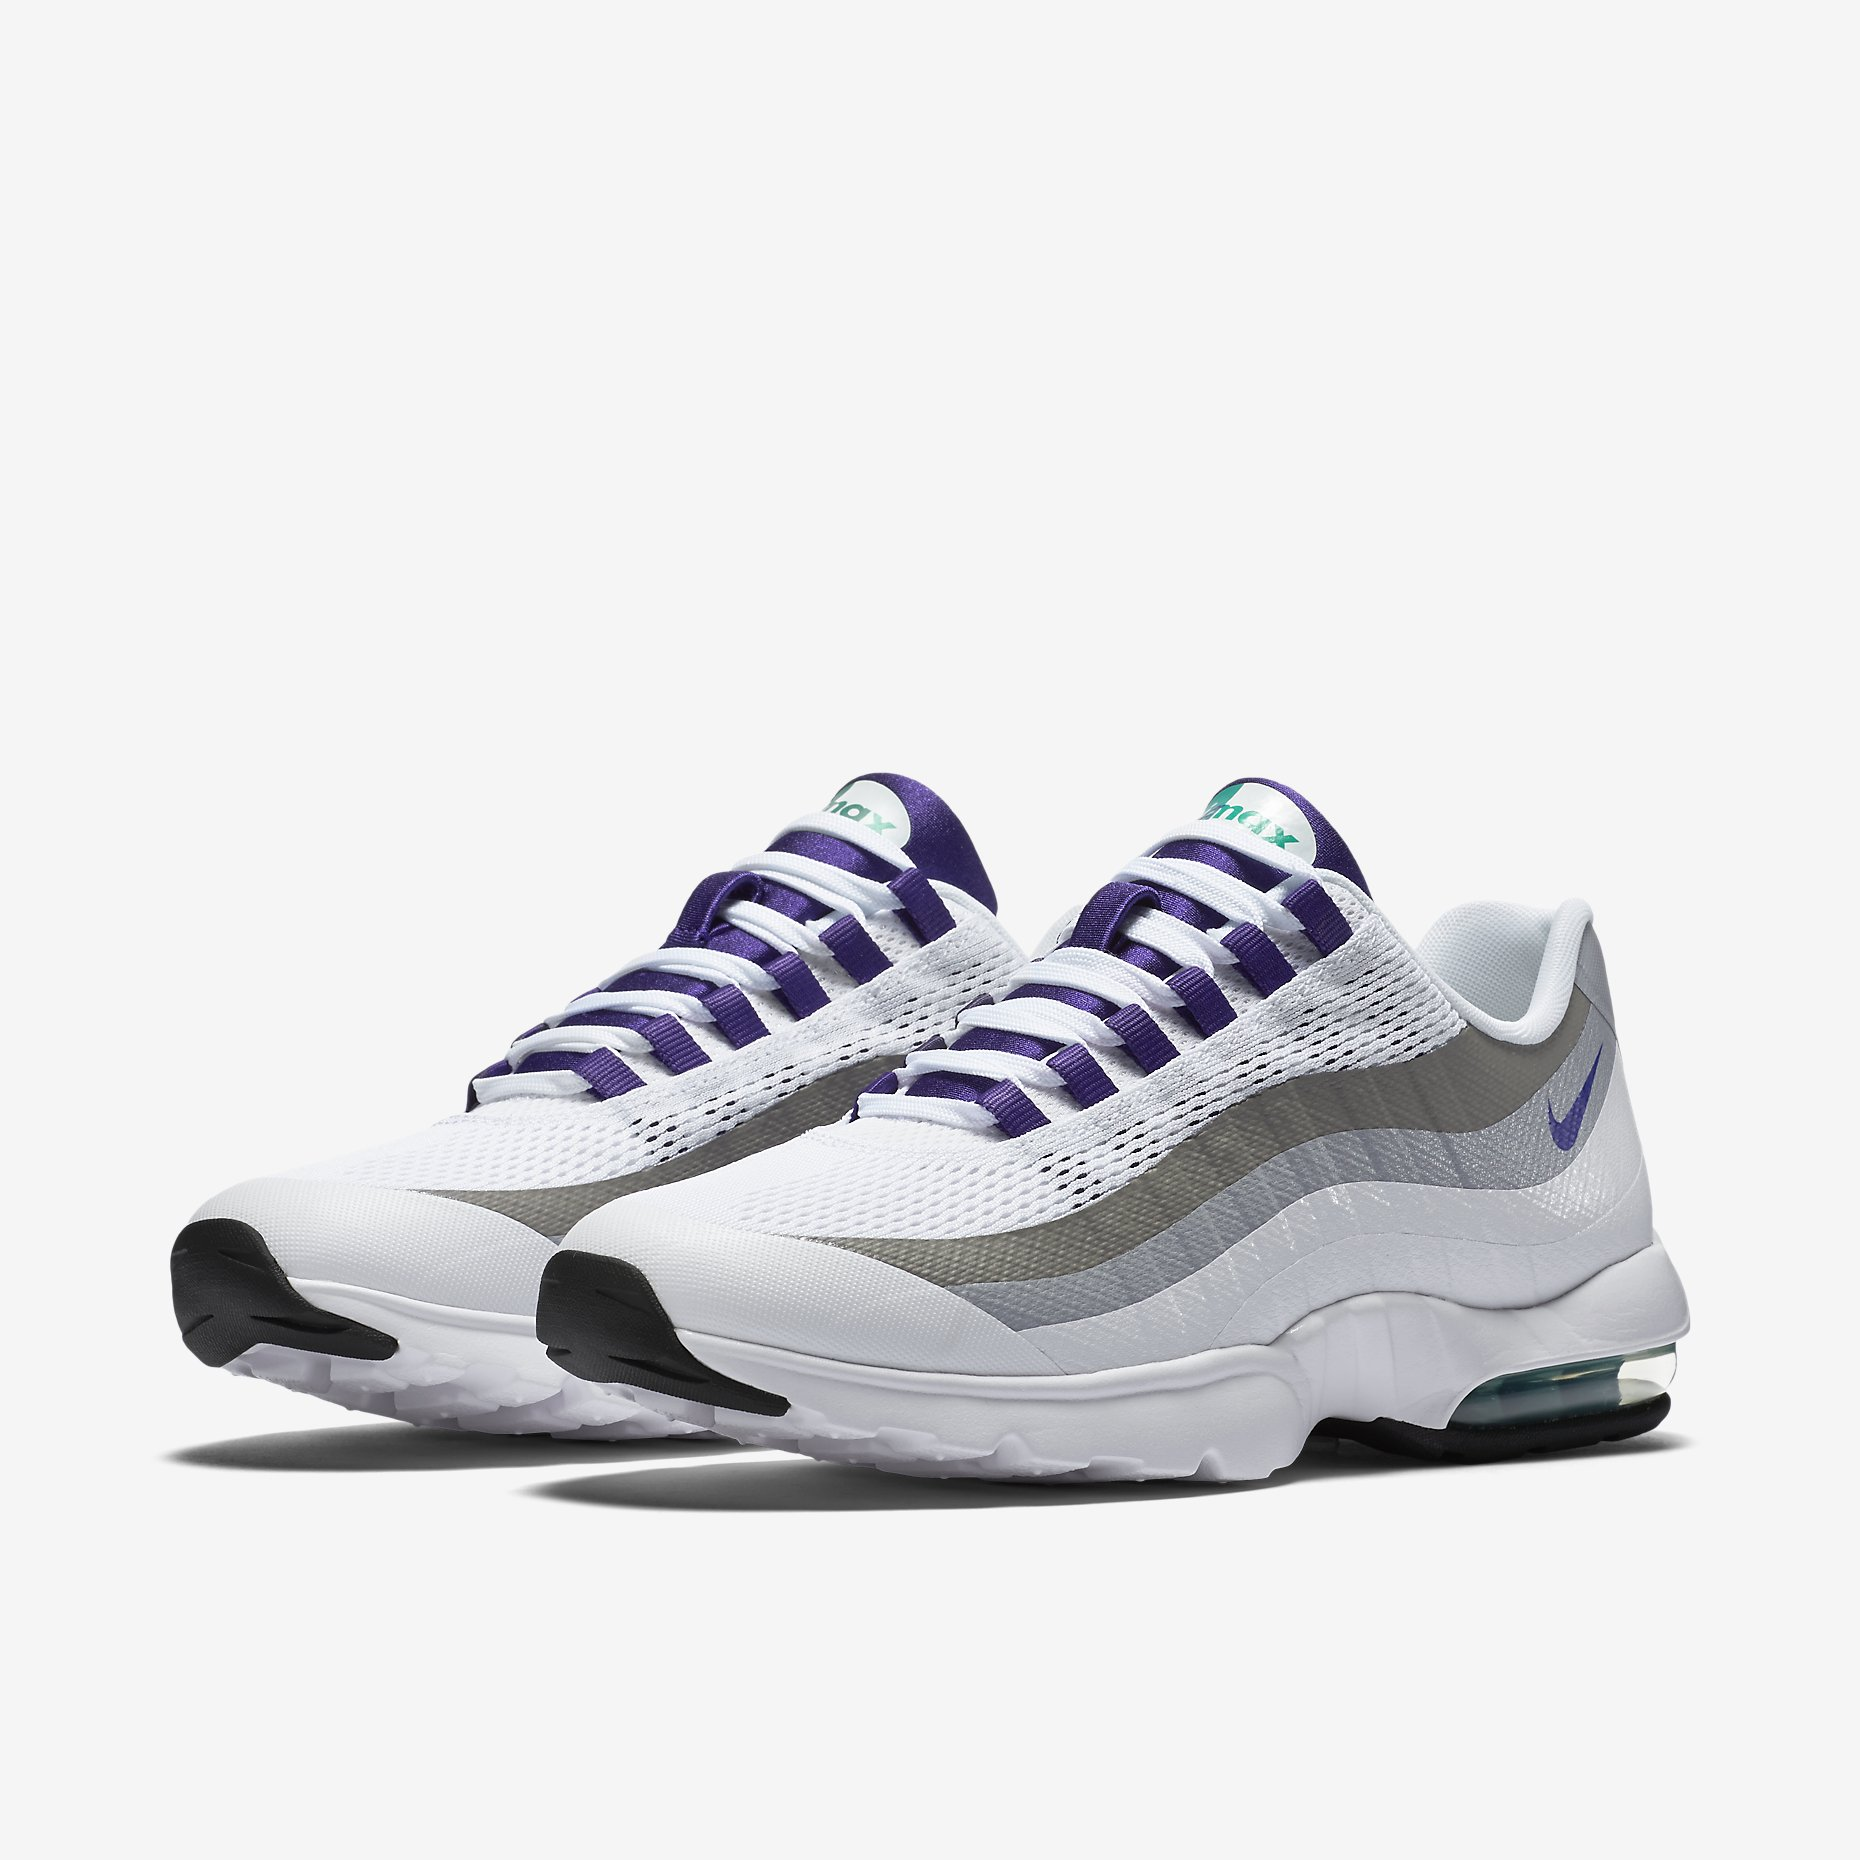 nike air max 95 grape femme LIST 9nDCO9qhg